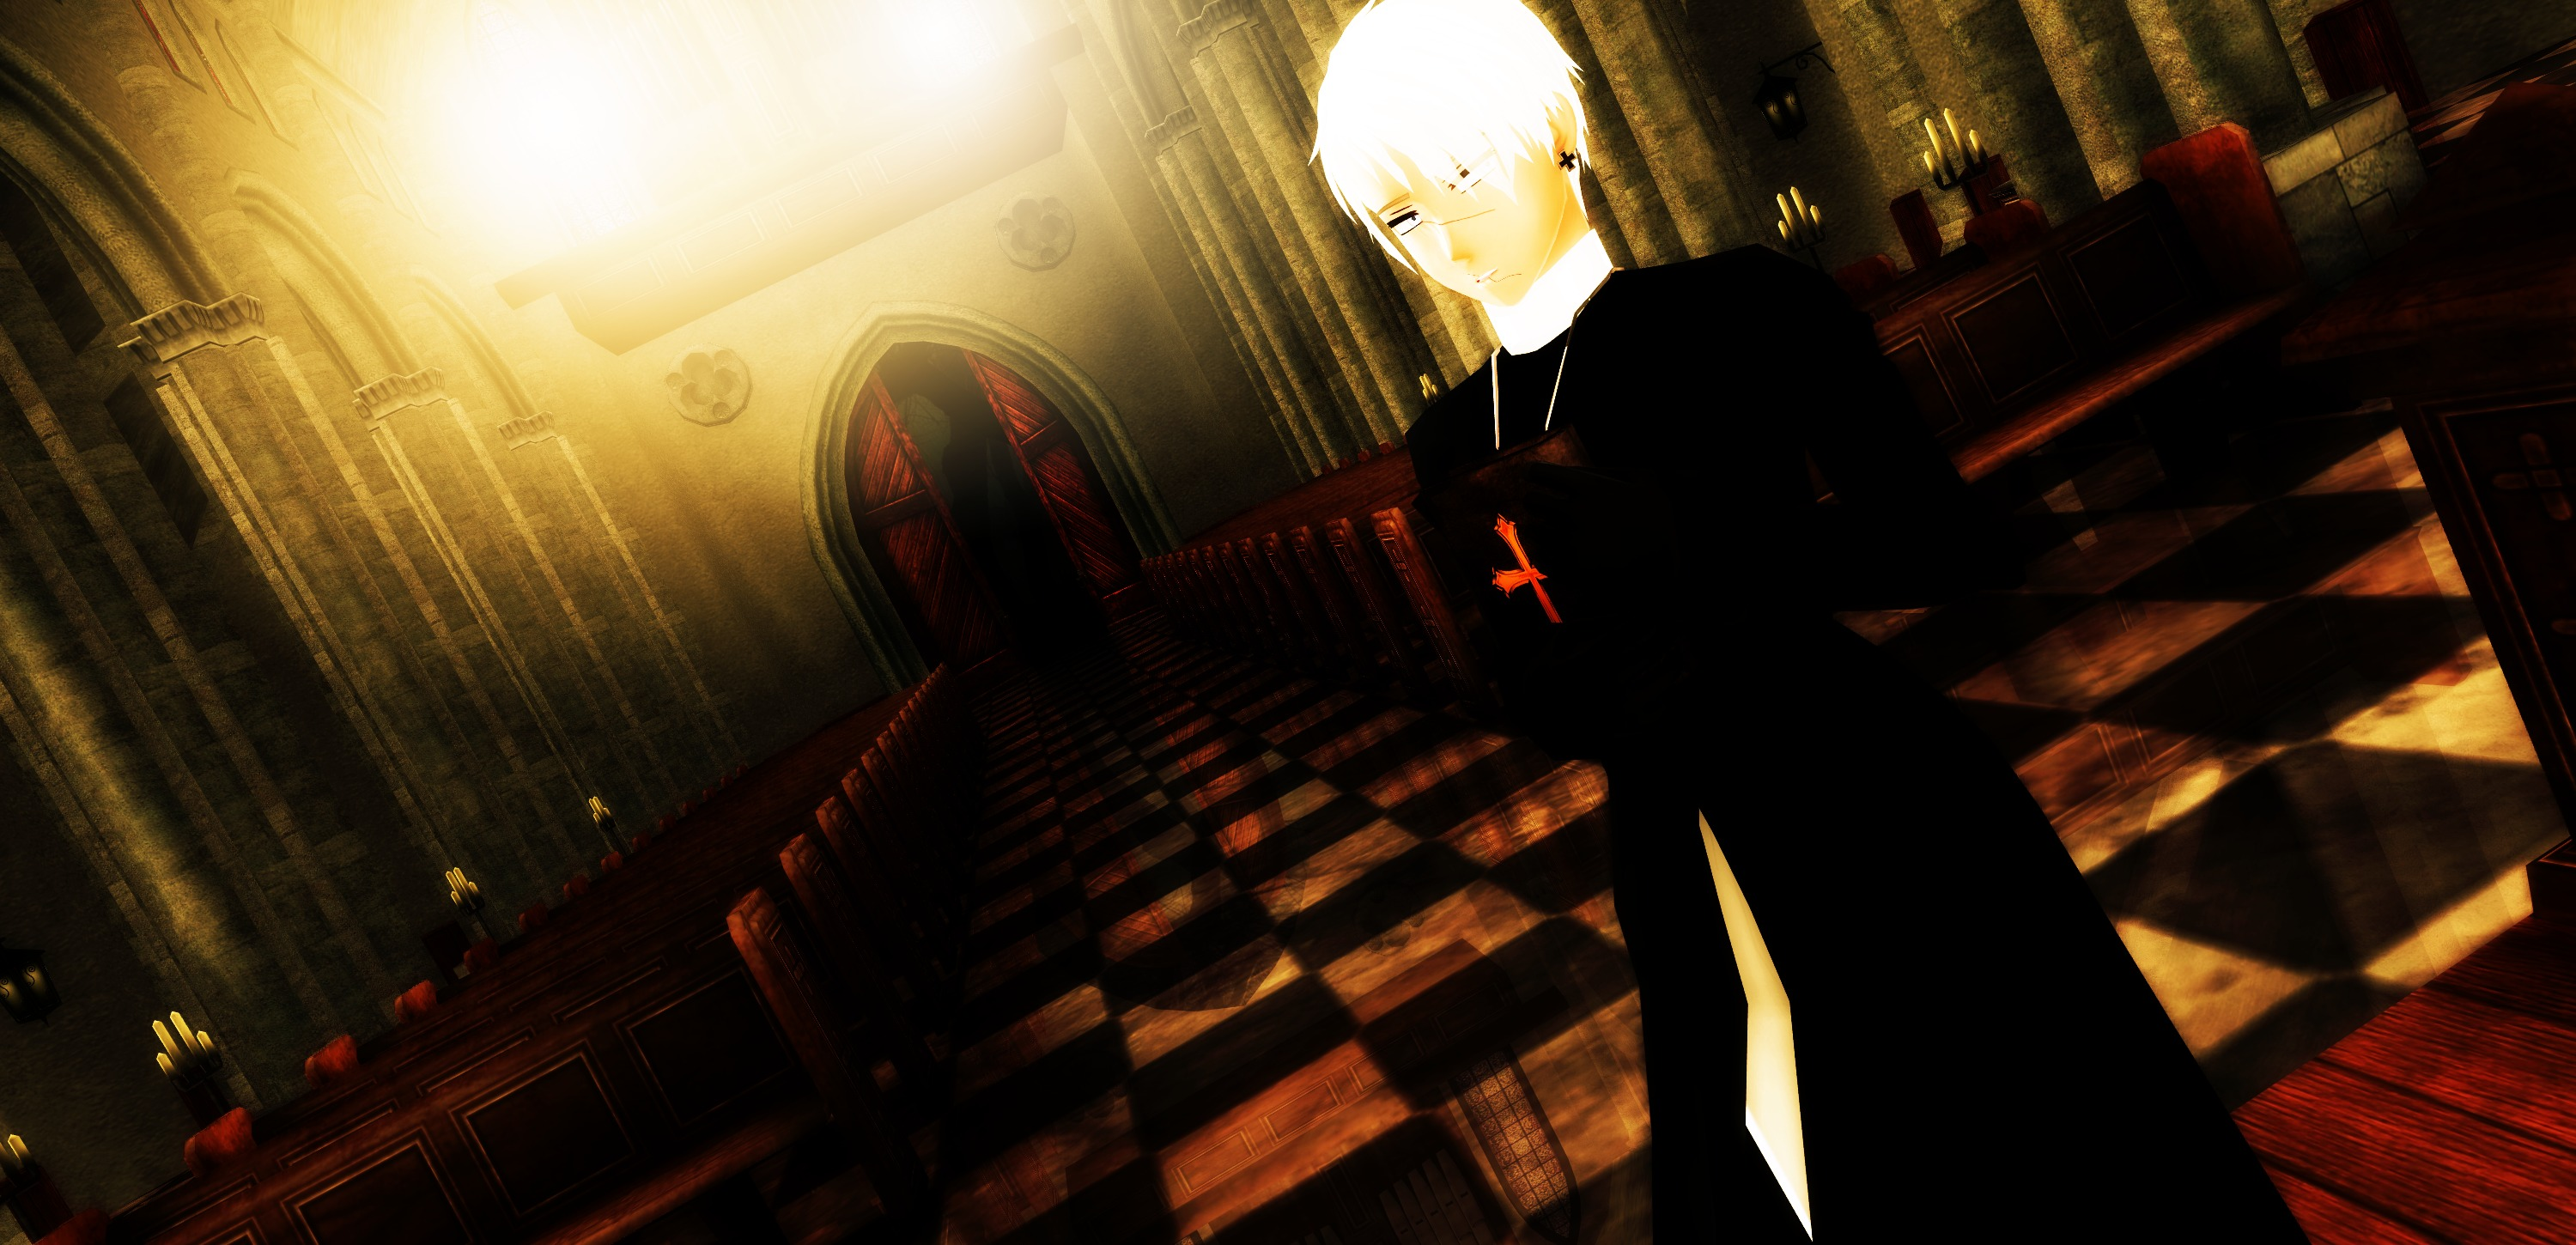 [MMD NEWCOMER] 2P!Prussia by xNaga